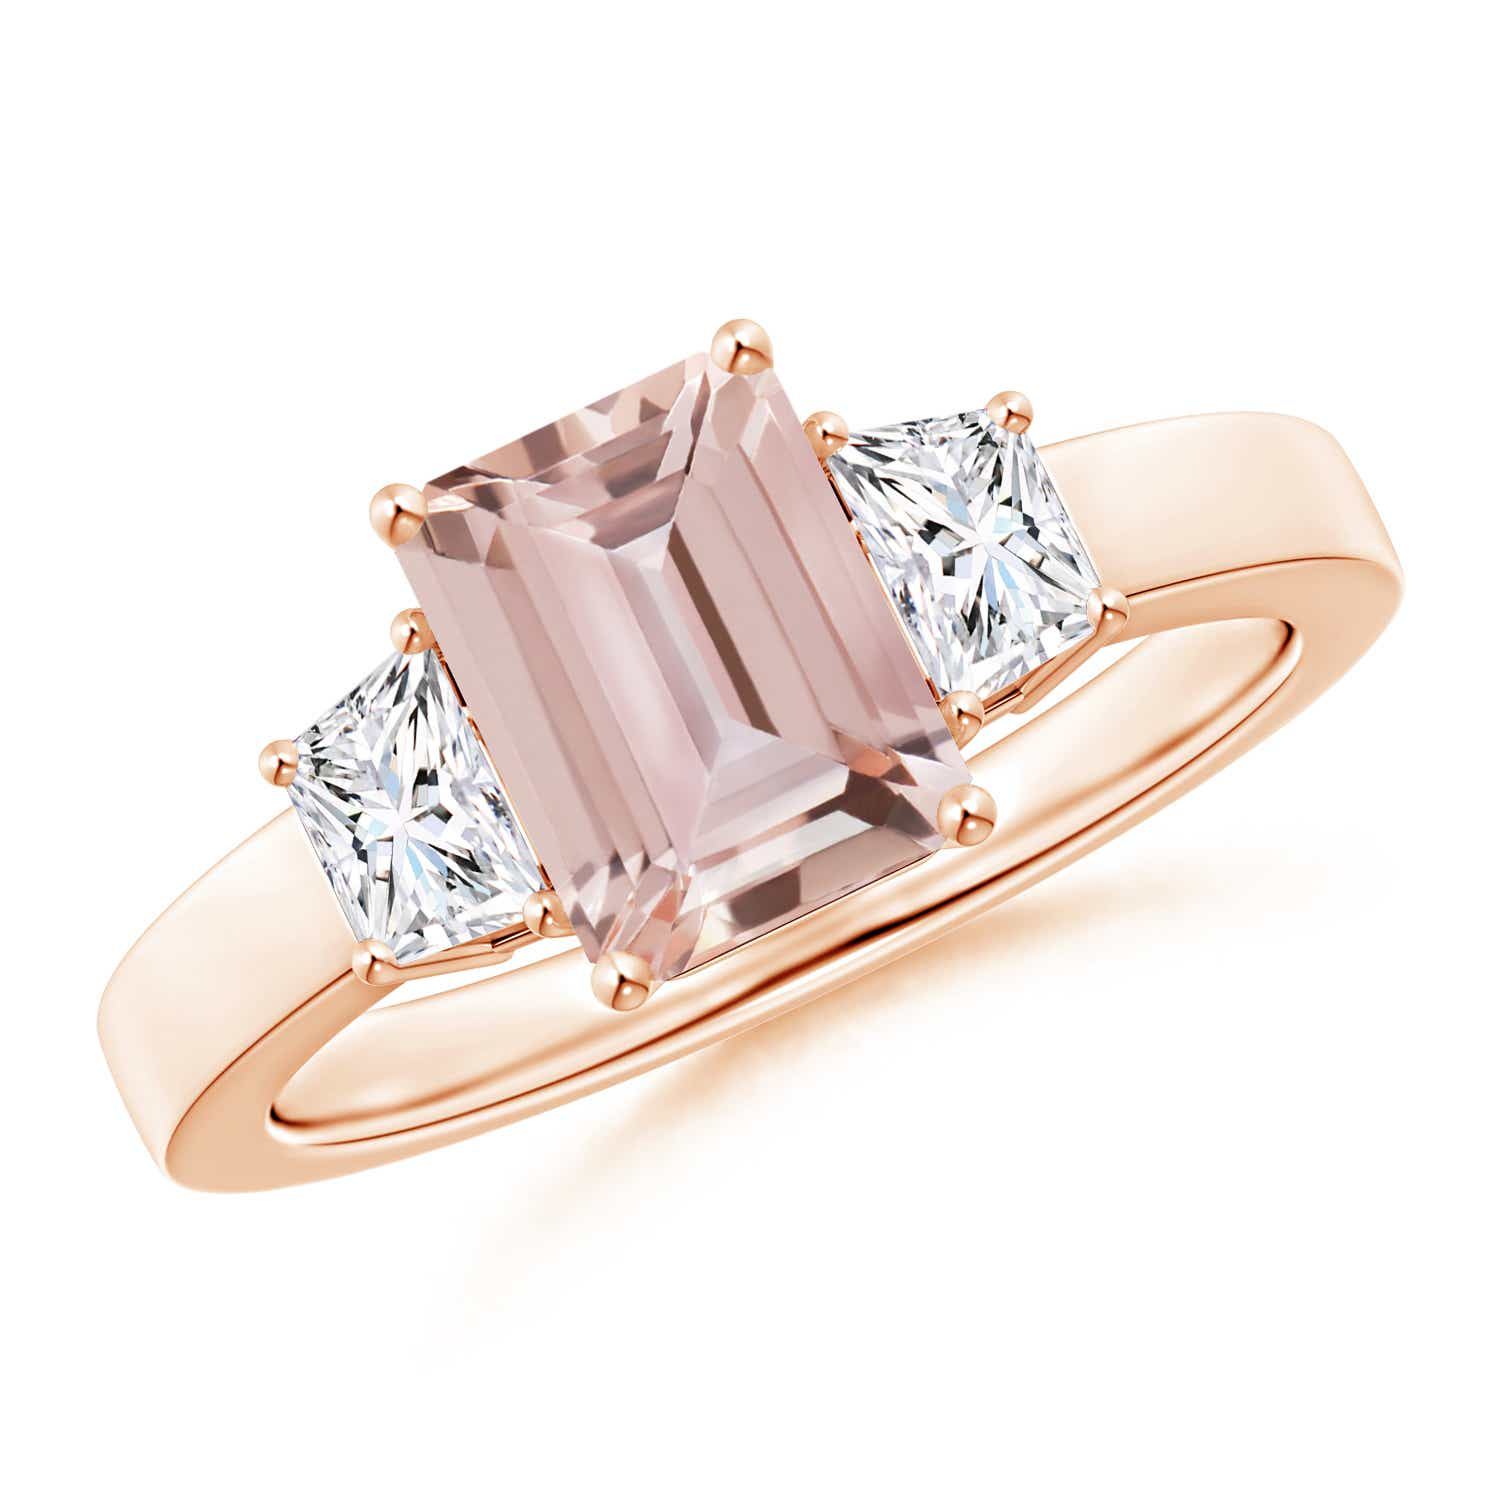 Angara Emerald-Cut Garnet and Trapezoid Diamond Three Stone Ring in Rose Gold